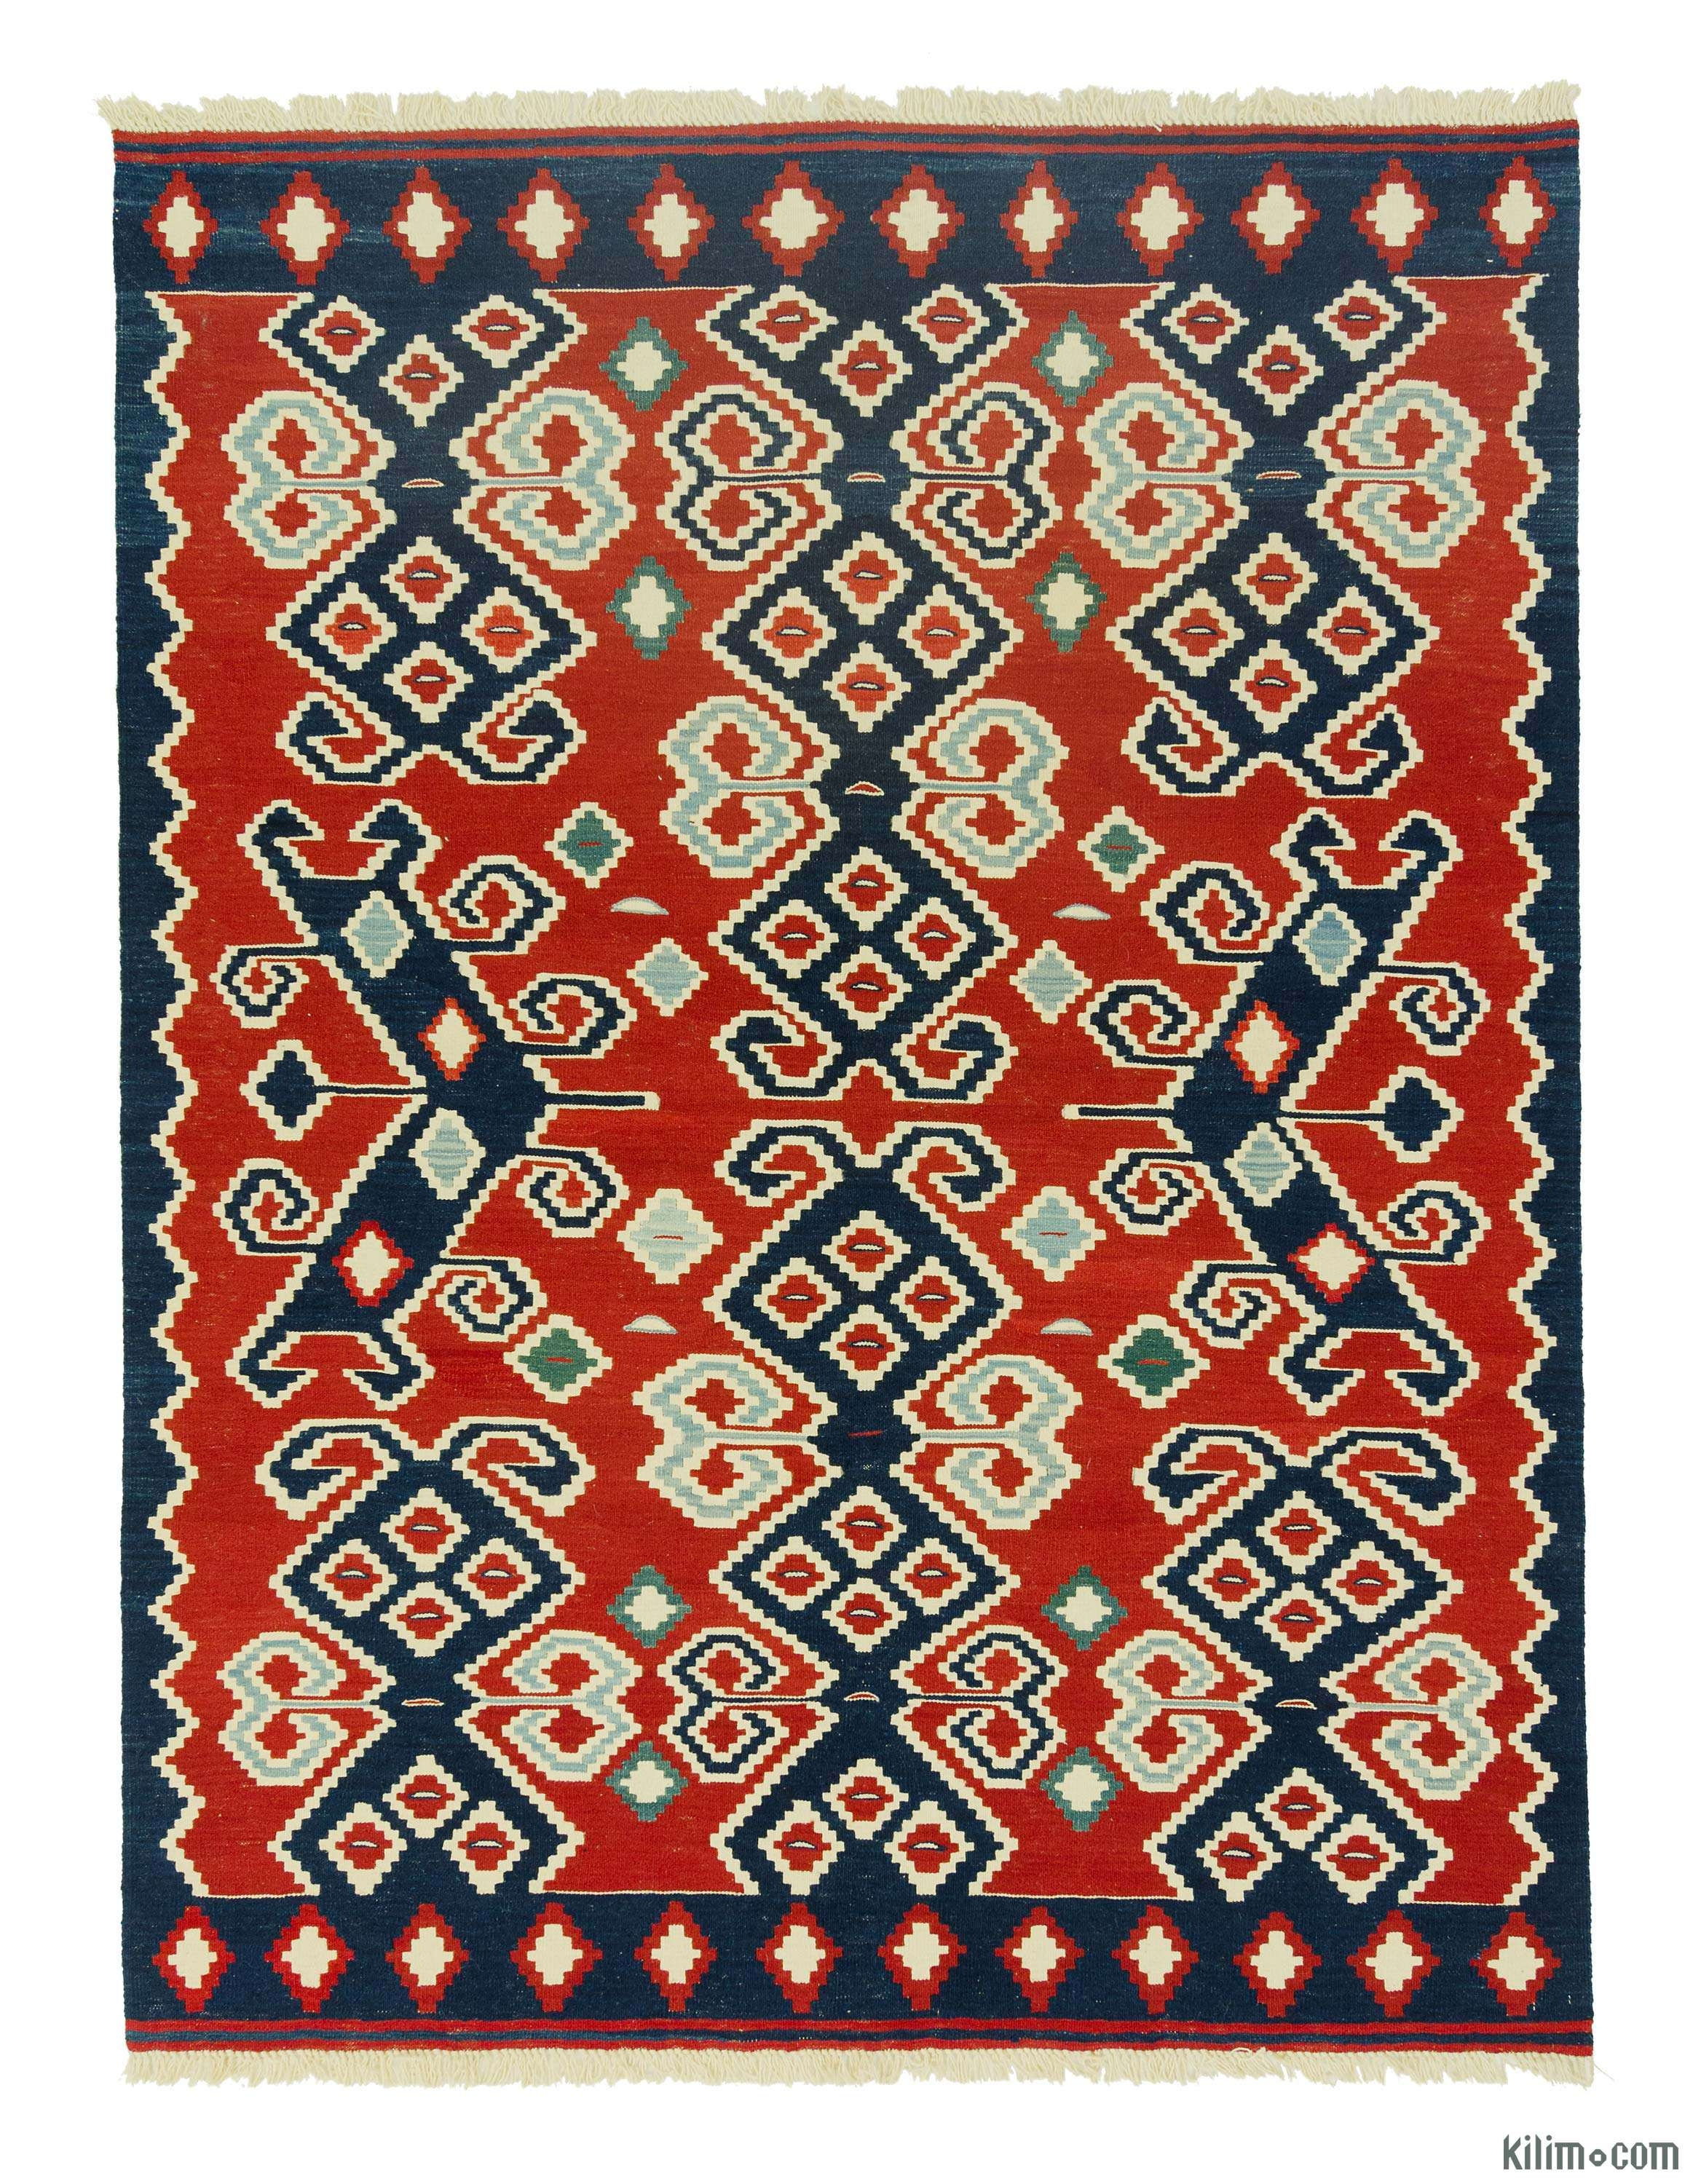 New Kilim Rugs Kilim Rugs Overdyed Vintage Rugs Hand Made In Turkish Kilim Rugs (Image 8 of 15)